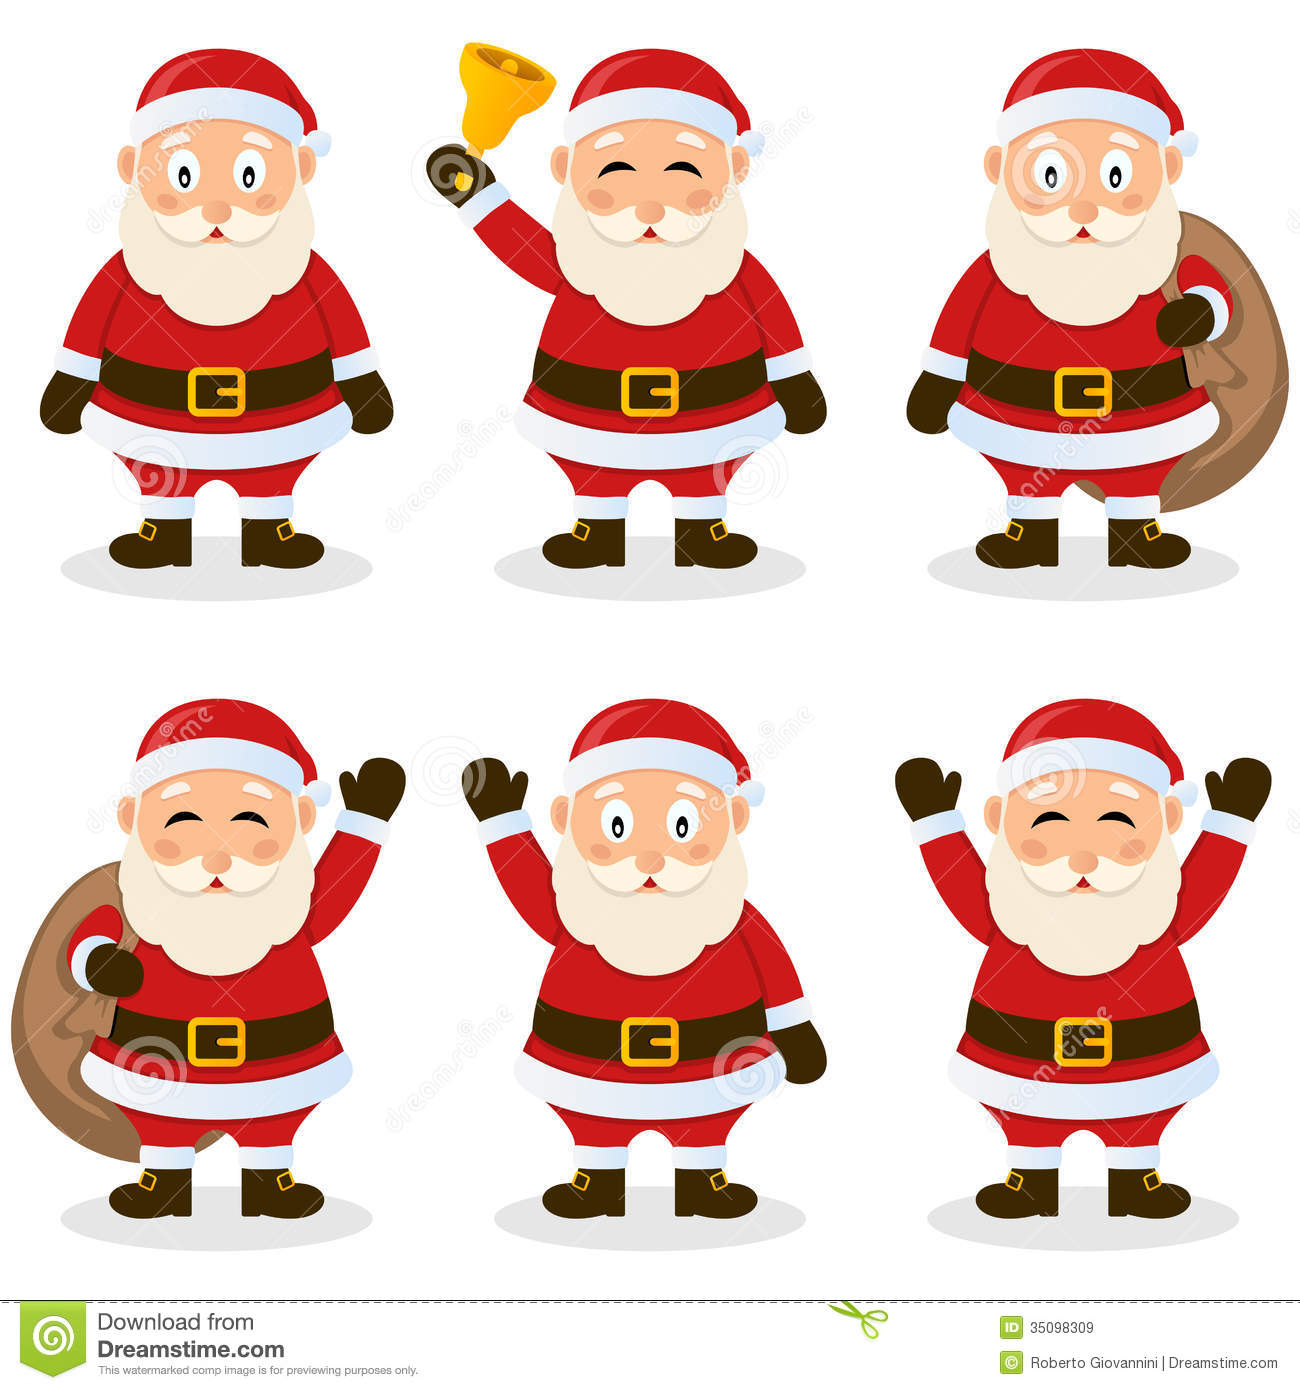 Santa Claus Cartoon Christmas Set